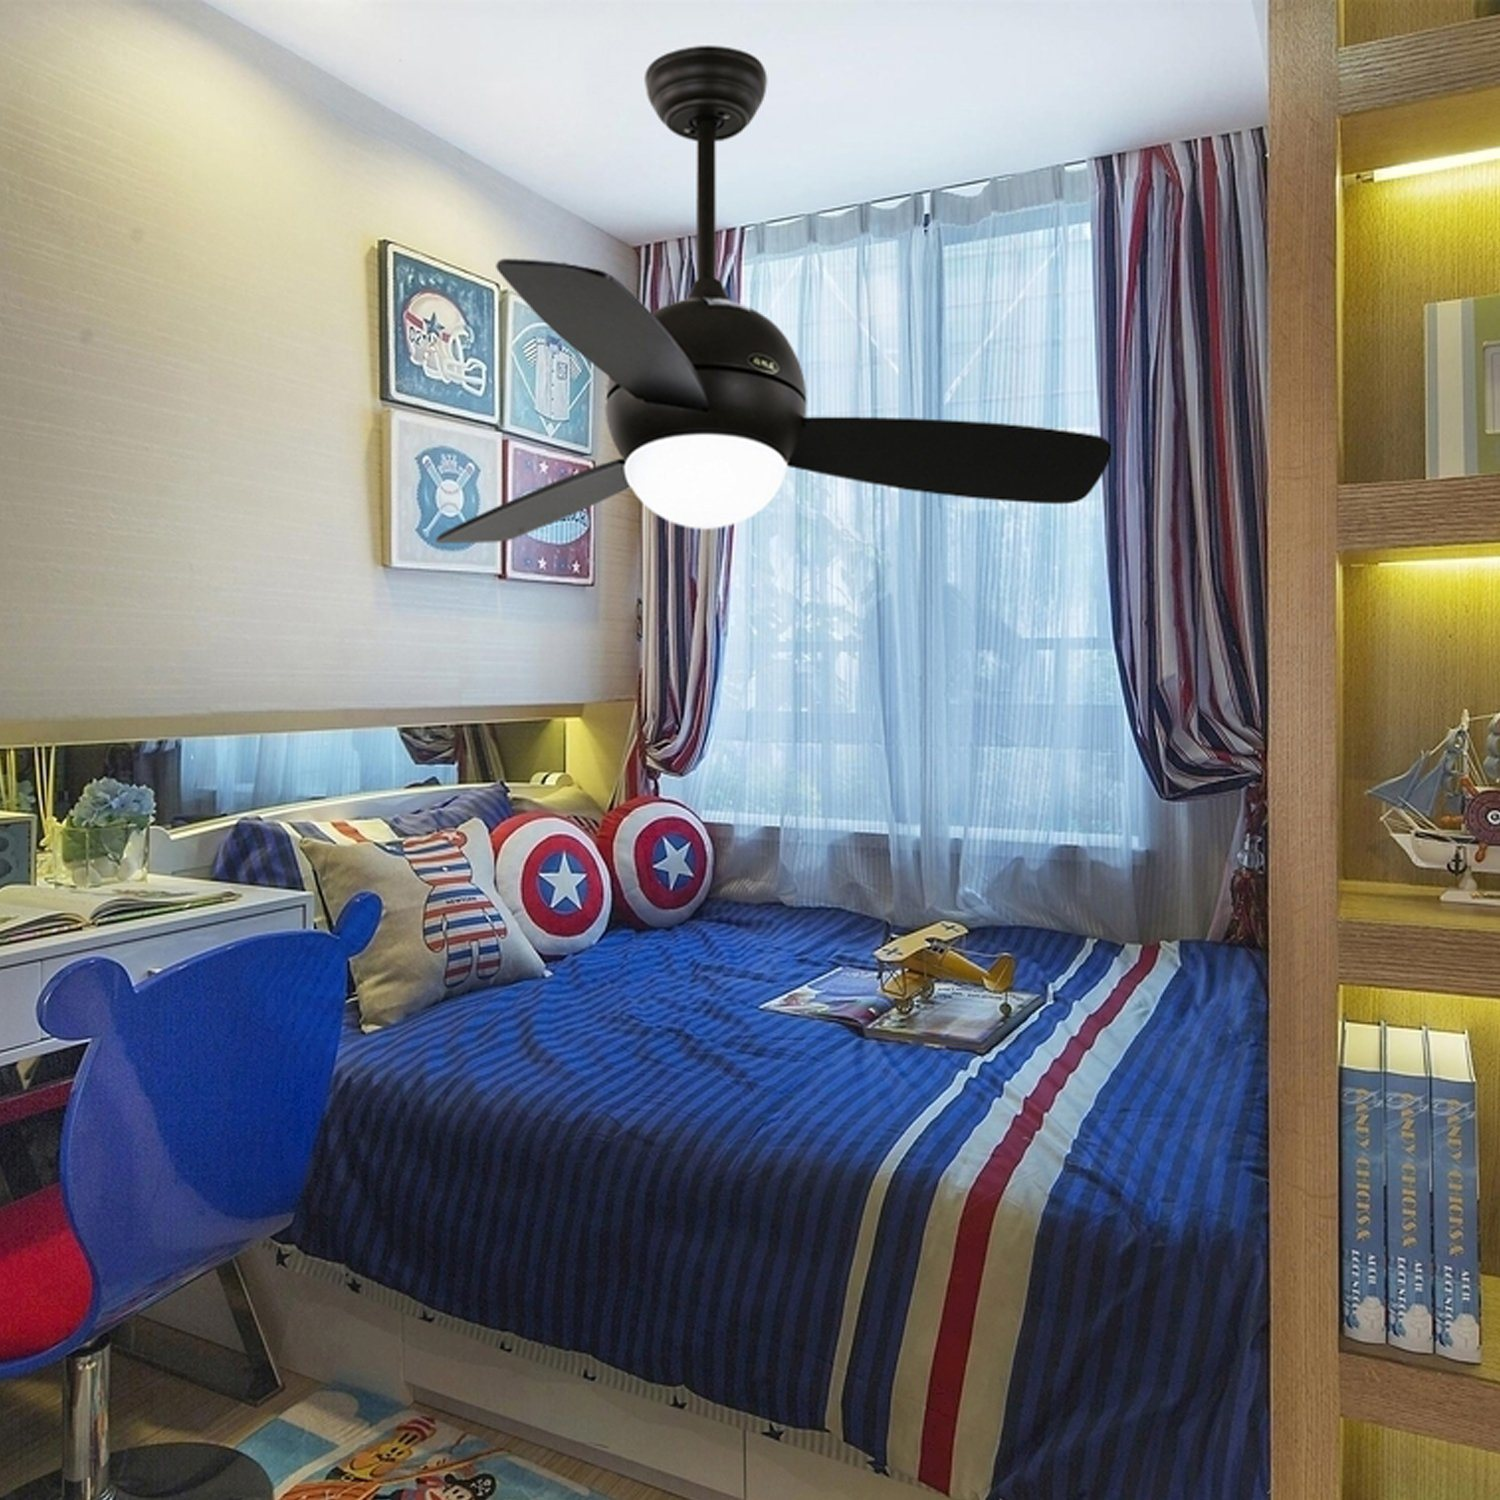 China Mini Size Kids Room Department Use Led Light Ceiling Fan Photos Pictures Made In China Com